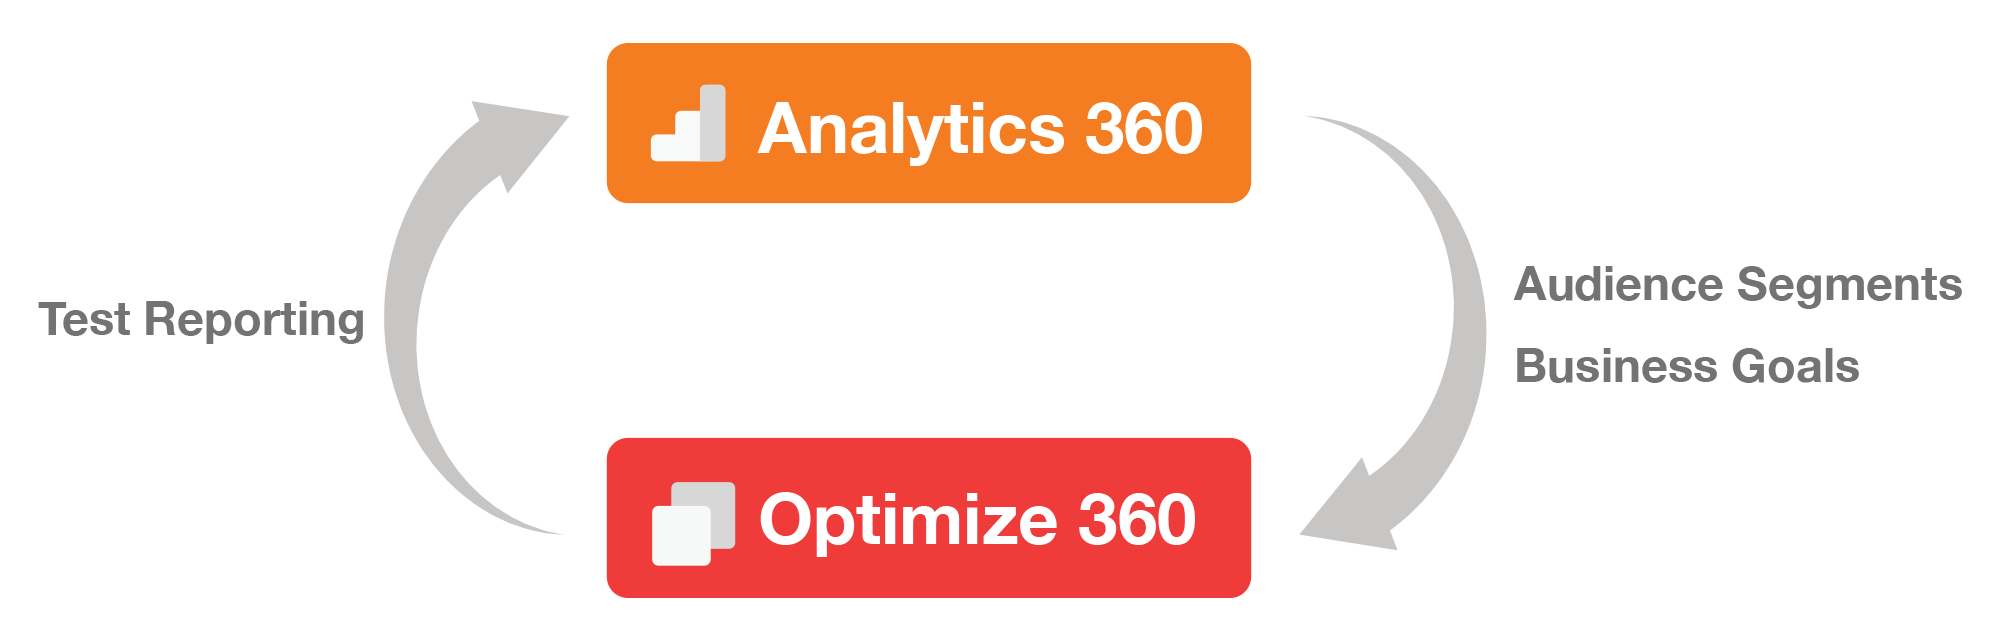 Optimize 360 Native Integration with Analytics 360